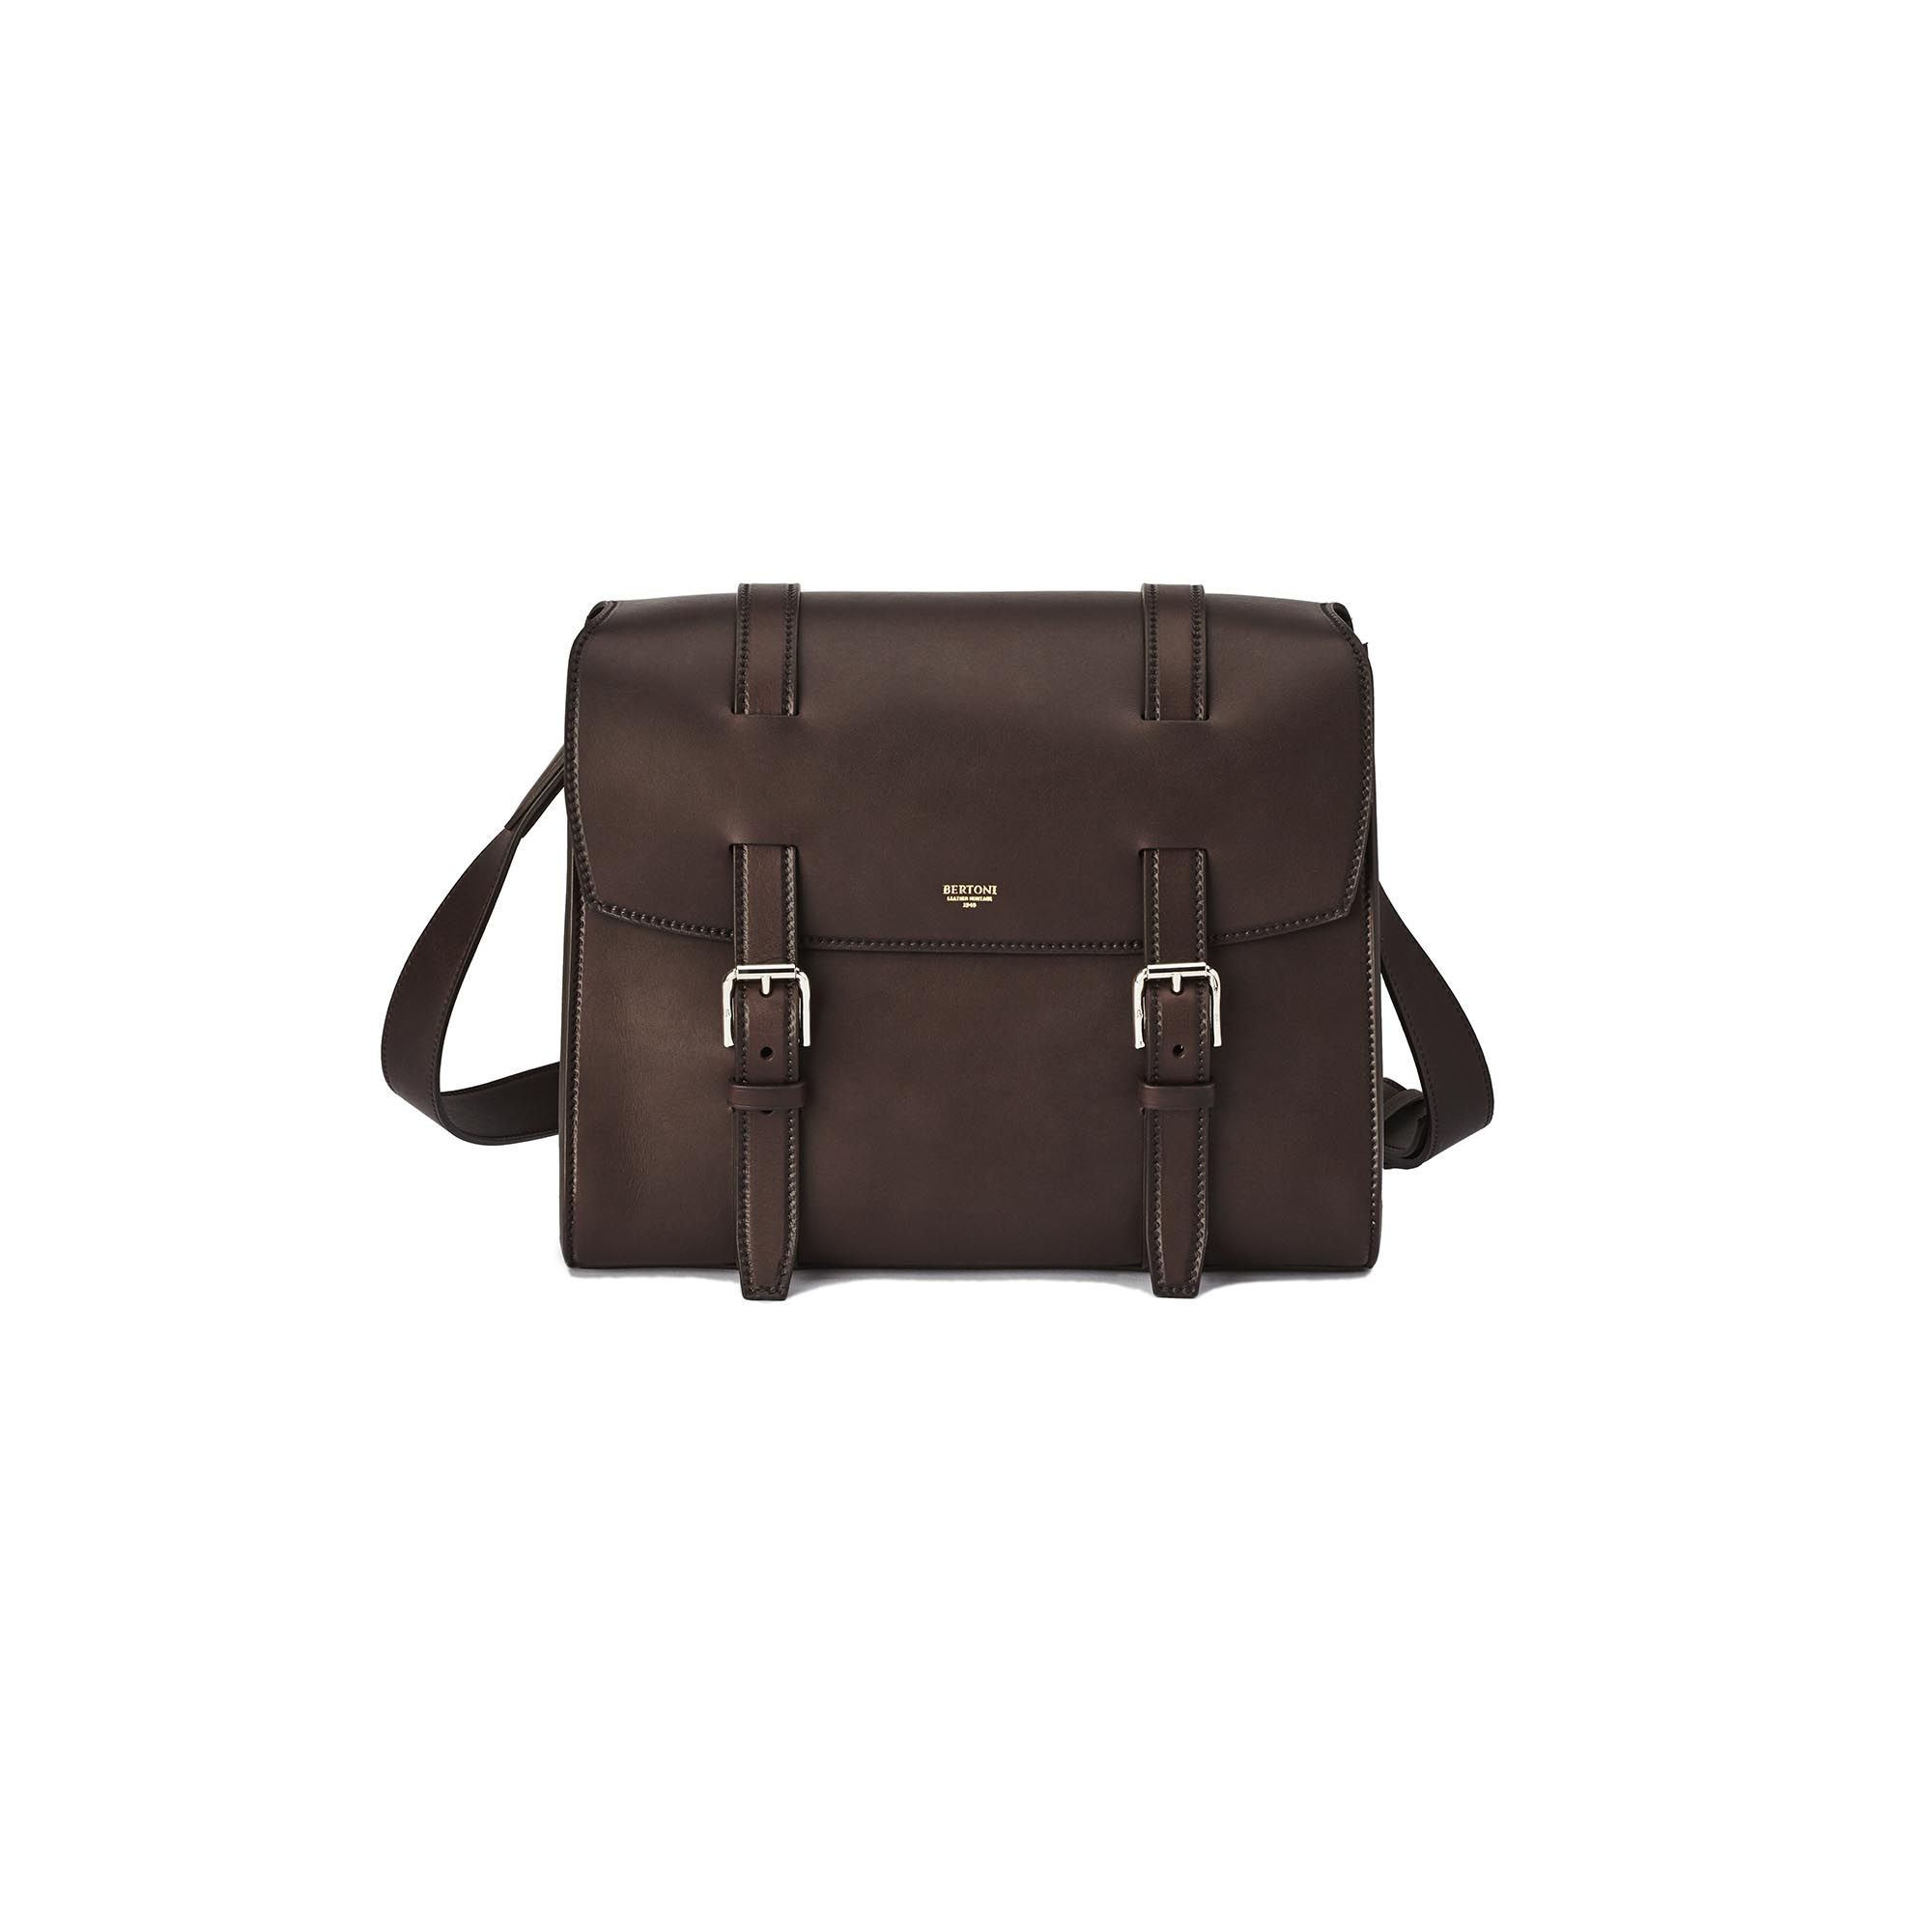 Signature-Messenger-dark-brown-french-calf-bag-Bertoni-1949